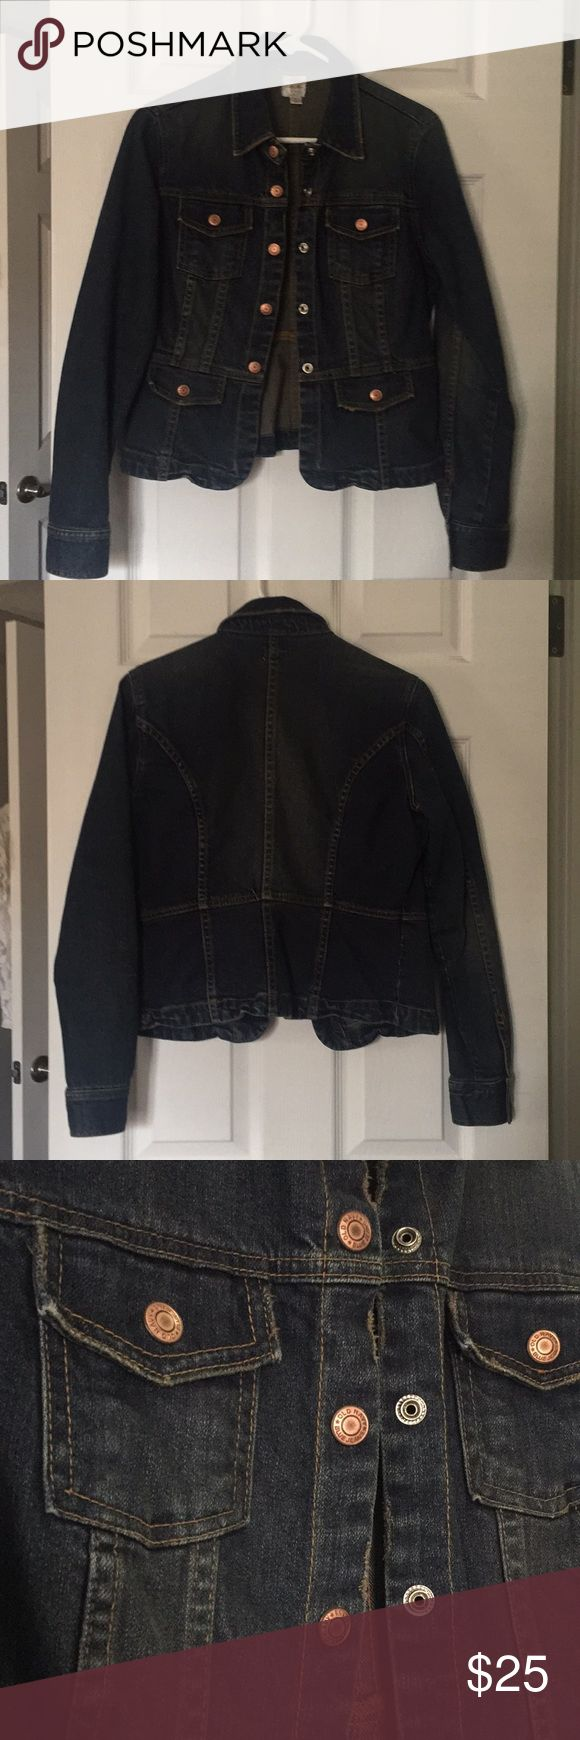 💥NEW LISTING!!💥 Old Navy jean jacket size medium Old Navy jean jacket in size medium. Every girl should have a jean jacket in her wardrobe. It's the one piece that often completes the look you're desire. Worn only a couple of times, practically new. Copper snap buttons. Jacket design cones with in at waist giving you the hour glass look every firm wants. Grab it now before it's gone! Old Navy Jackets & Coats Jean Jackets